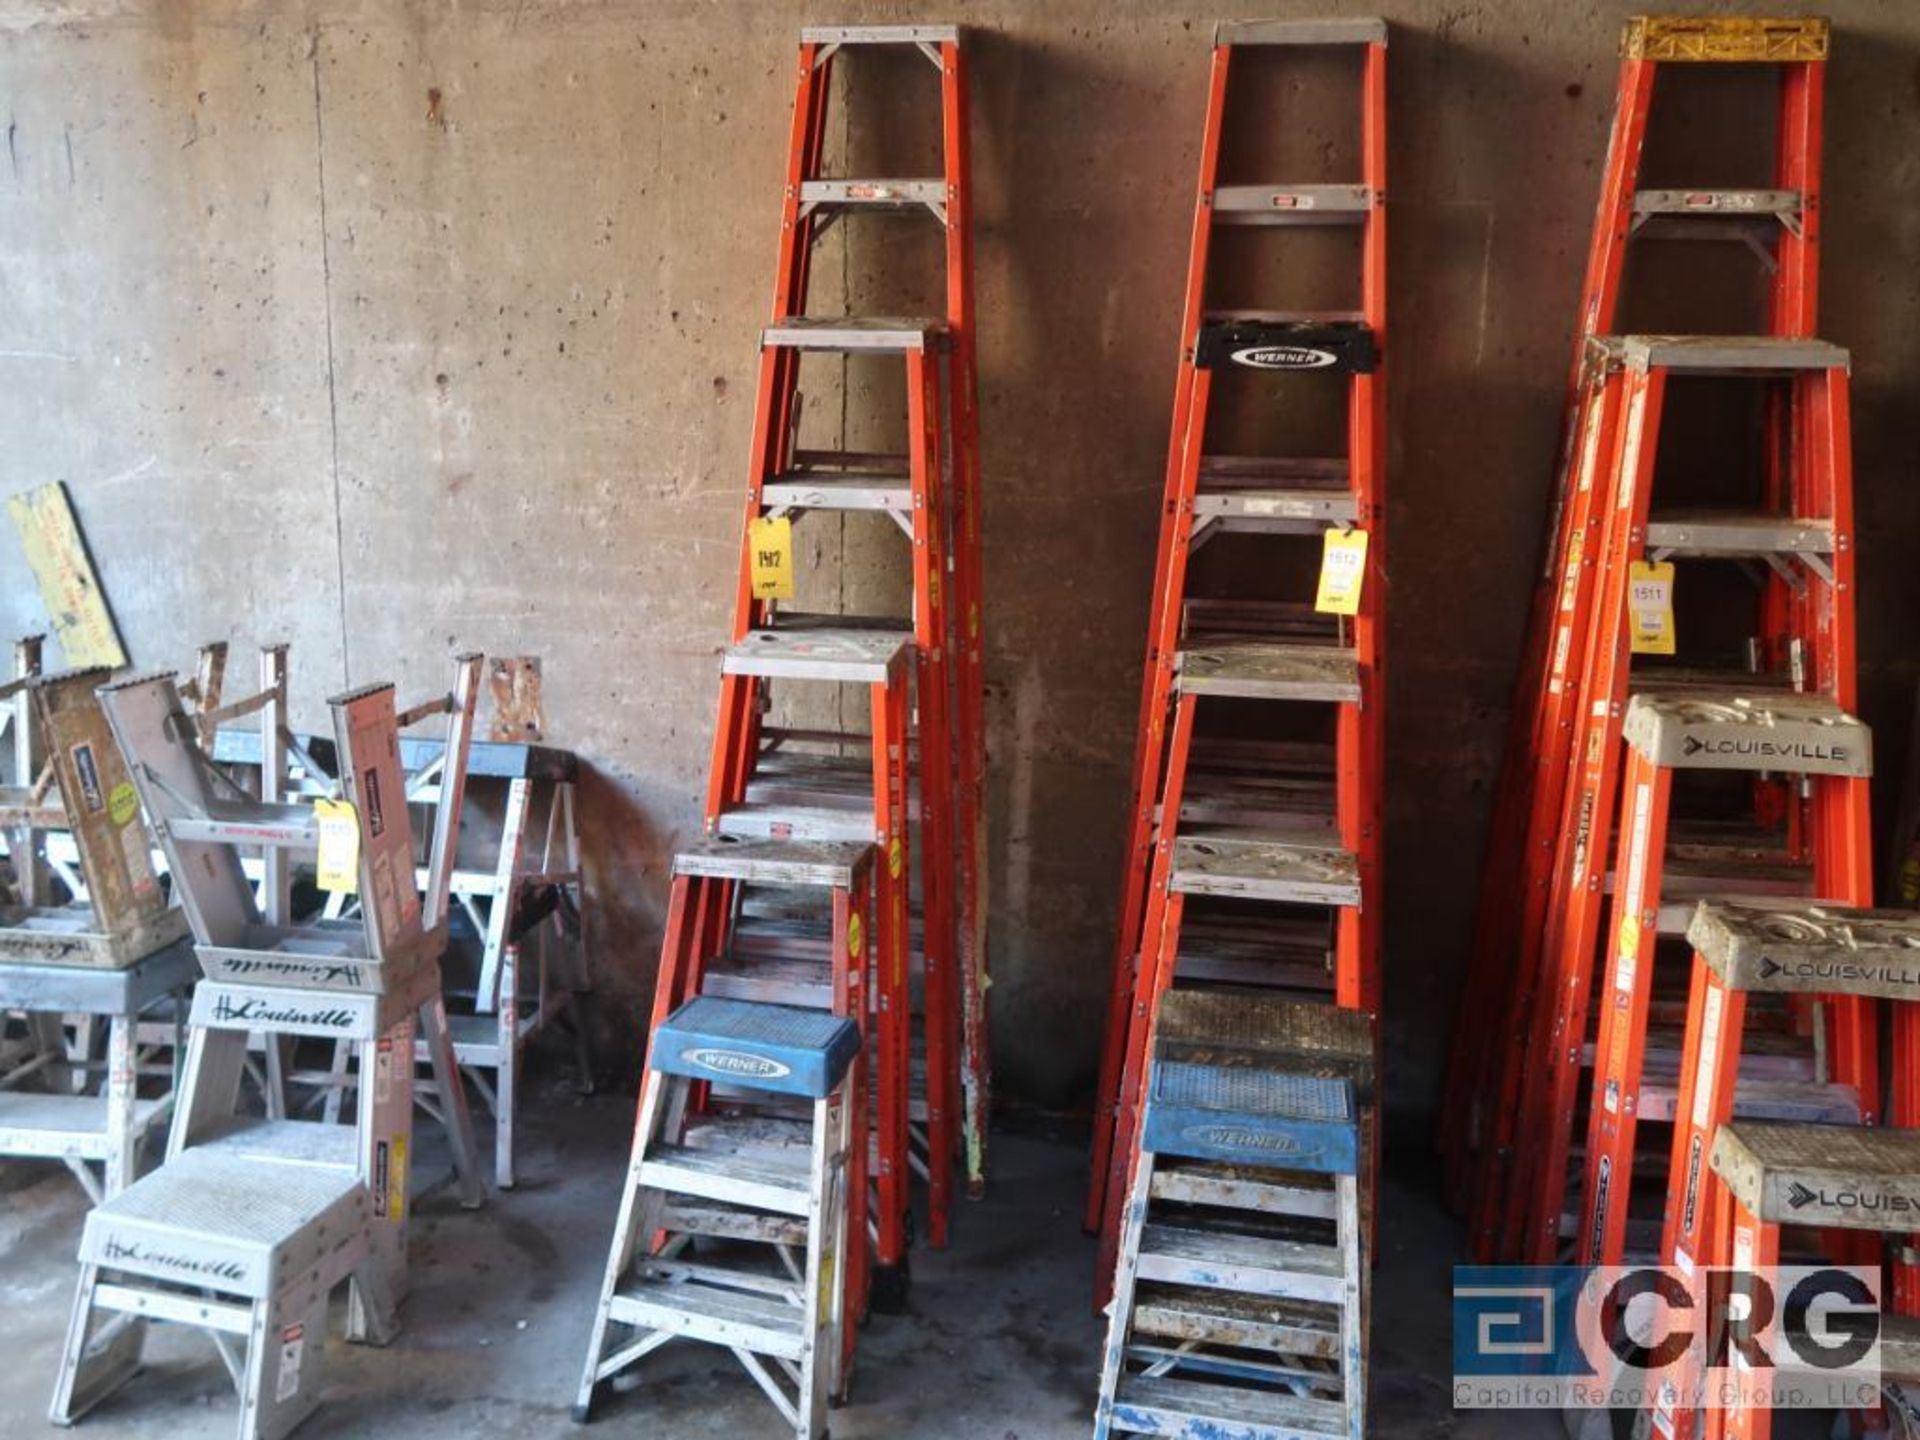 Lot of (11) ladders including (2) 7 step, (2) 5 step, (2) 3 step, and (5) 2 step (Stores Area)